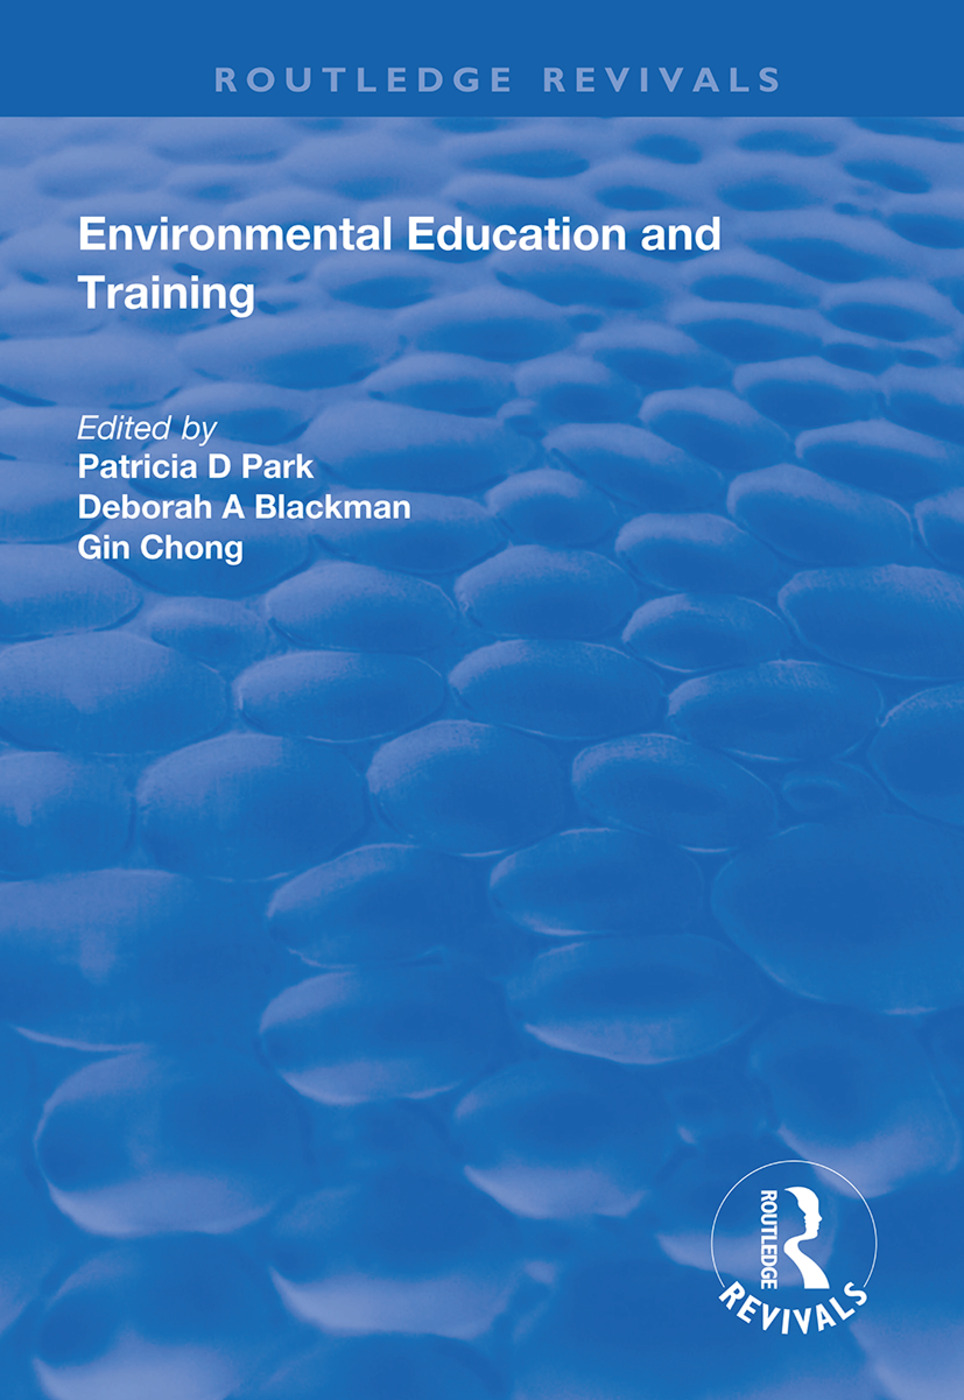 Environmental Education and Training